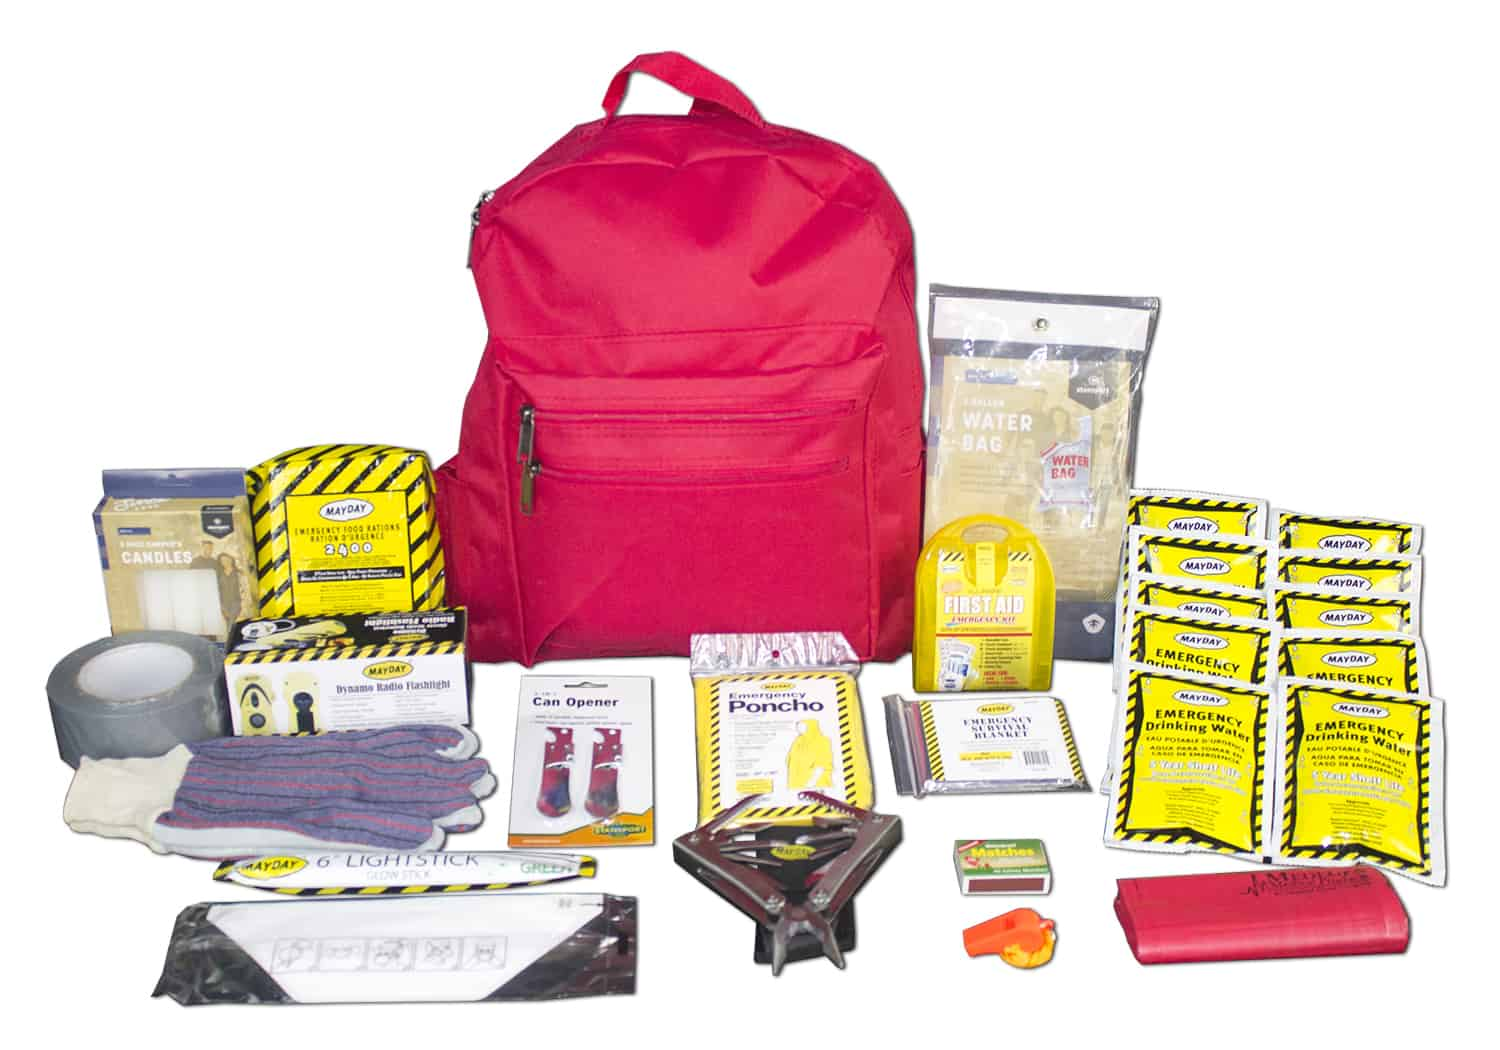 Deluxe 72 Hour Emergency Survival Kit - 1 Person